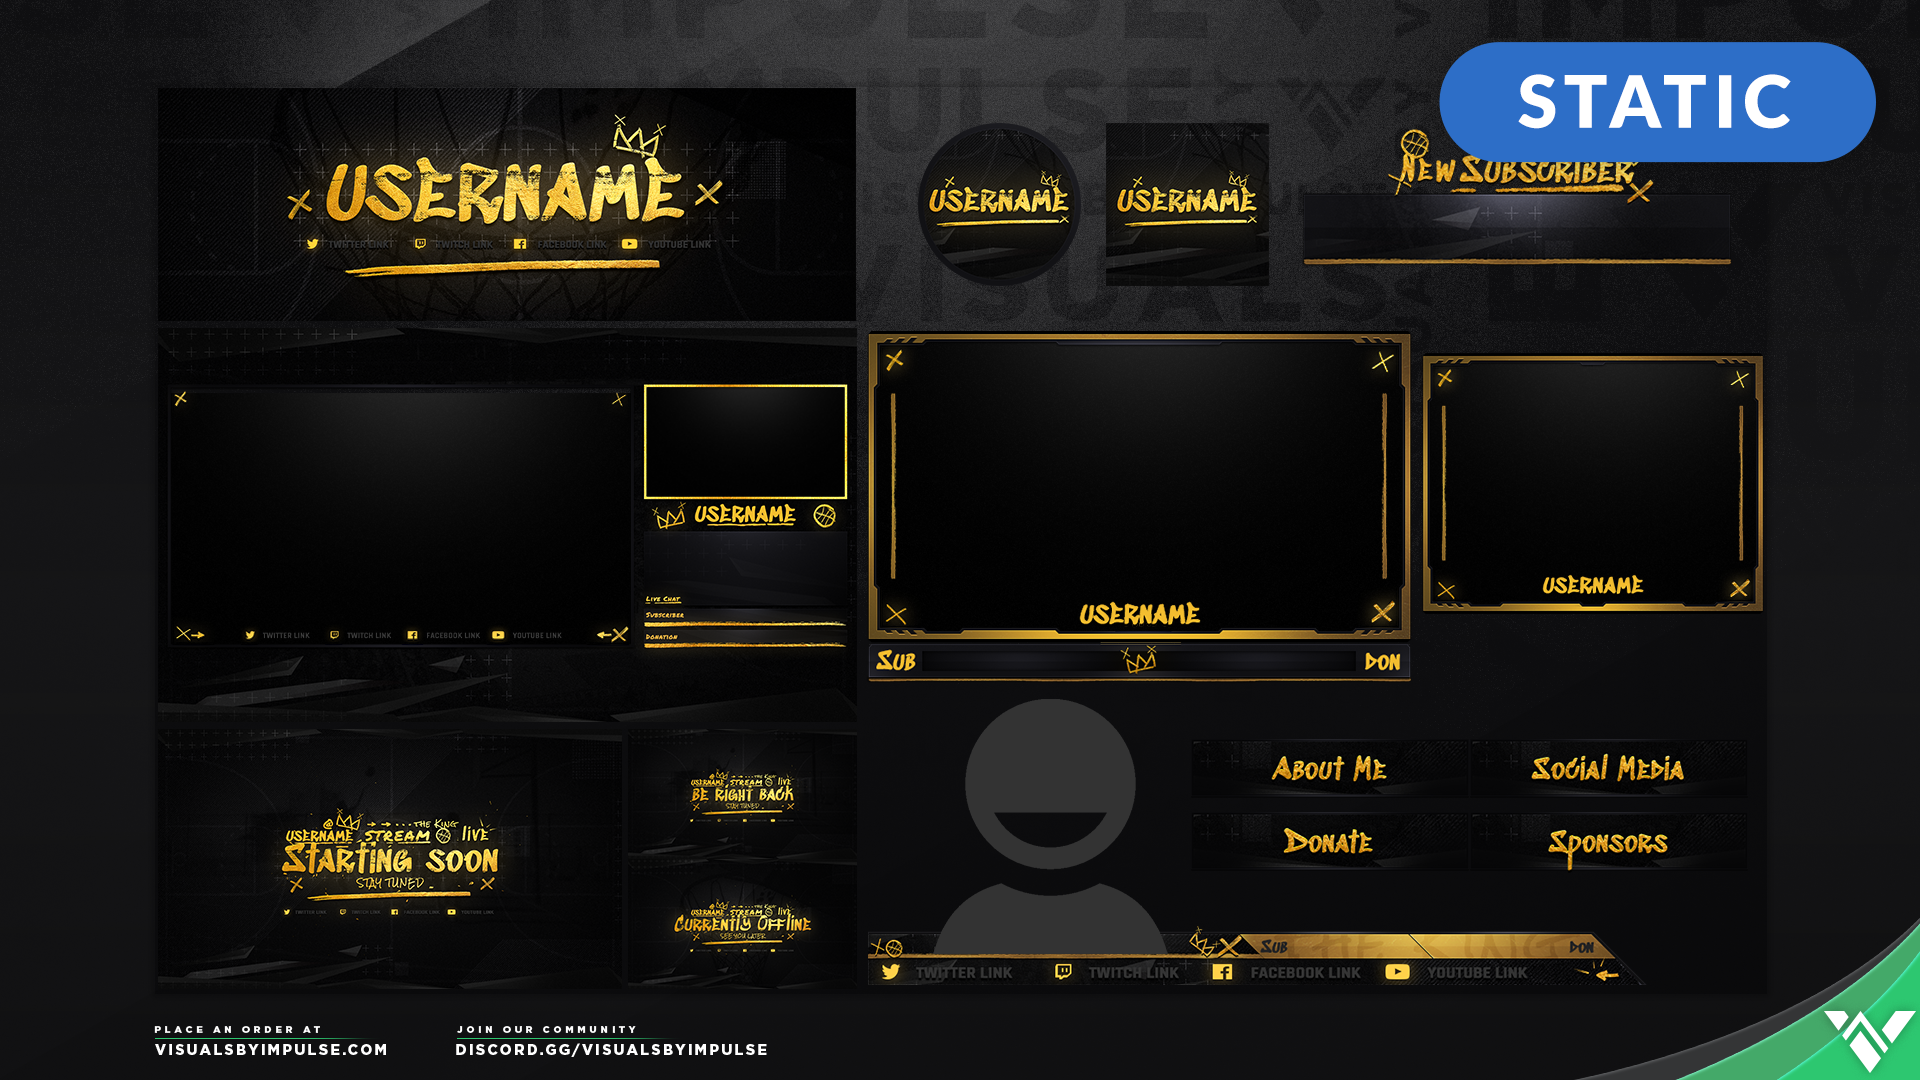 2K Stream Overlays - NBA 2K19 Graphics for Twitch and Mixer